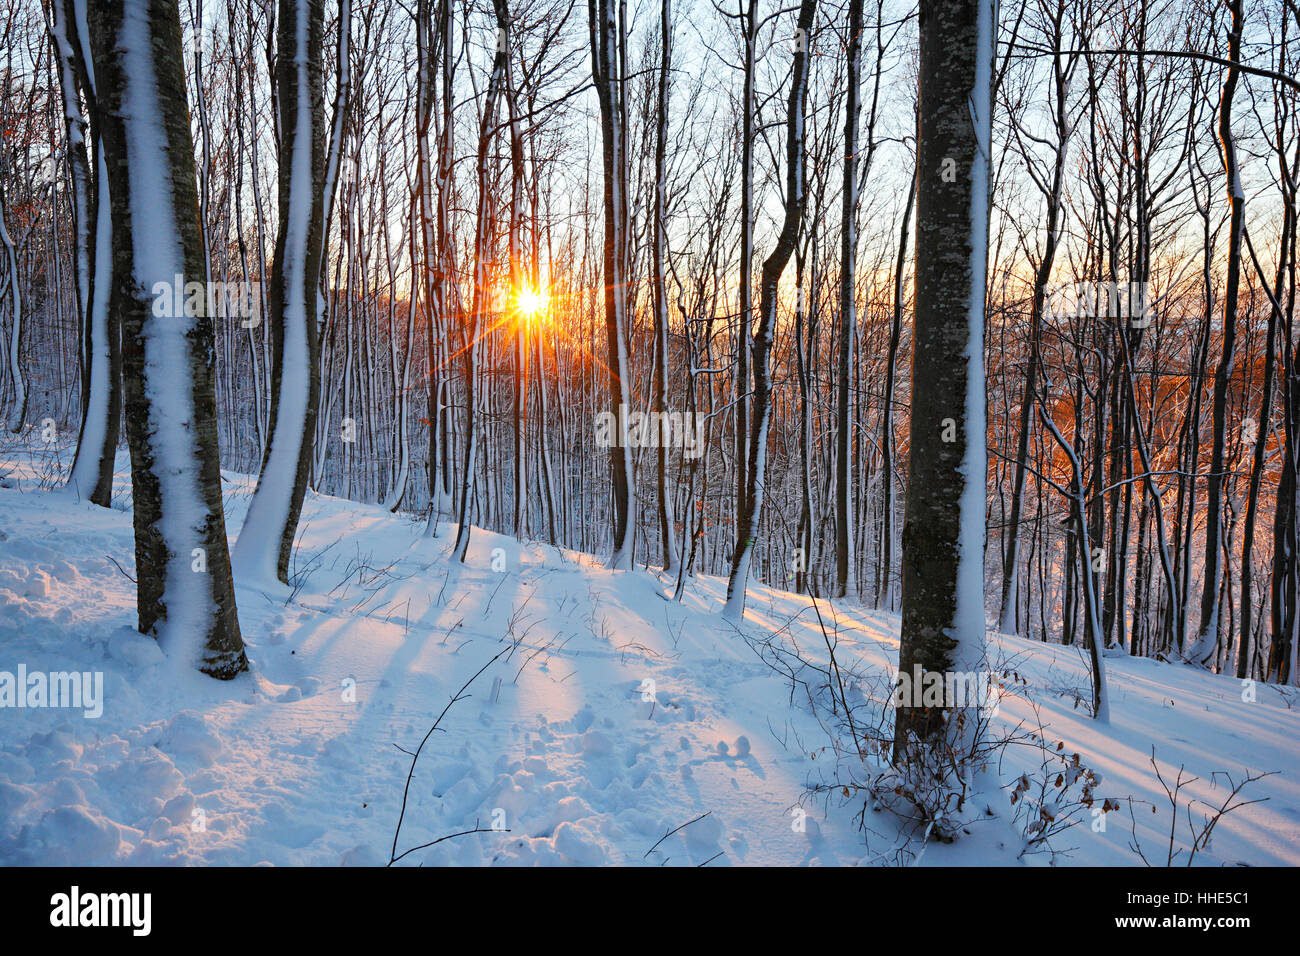 Sun in snow cowered forest Immagini Stock